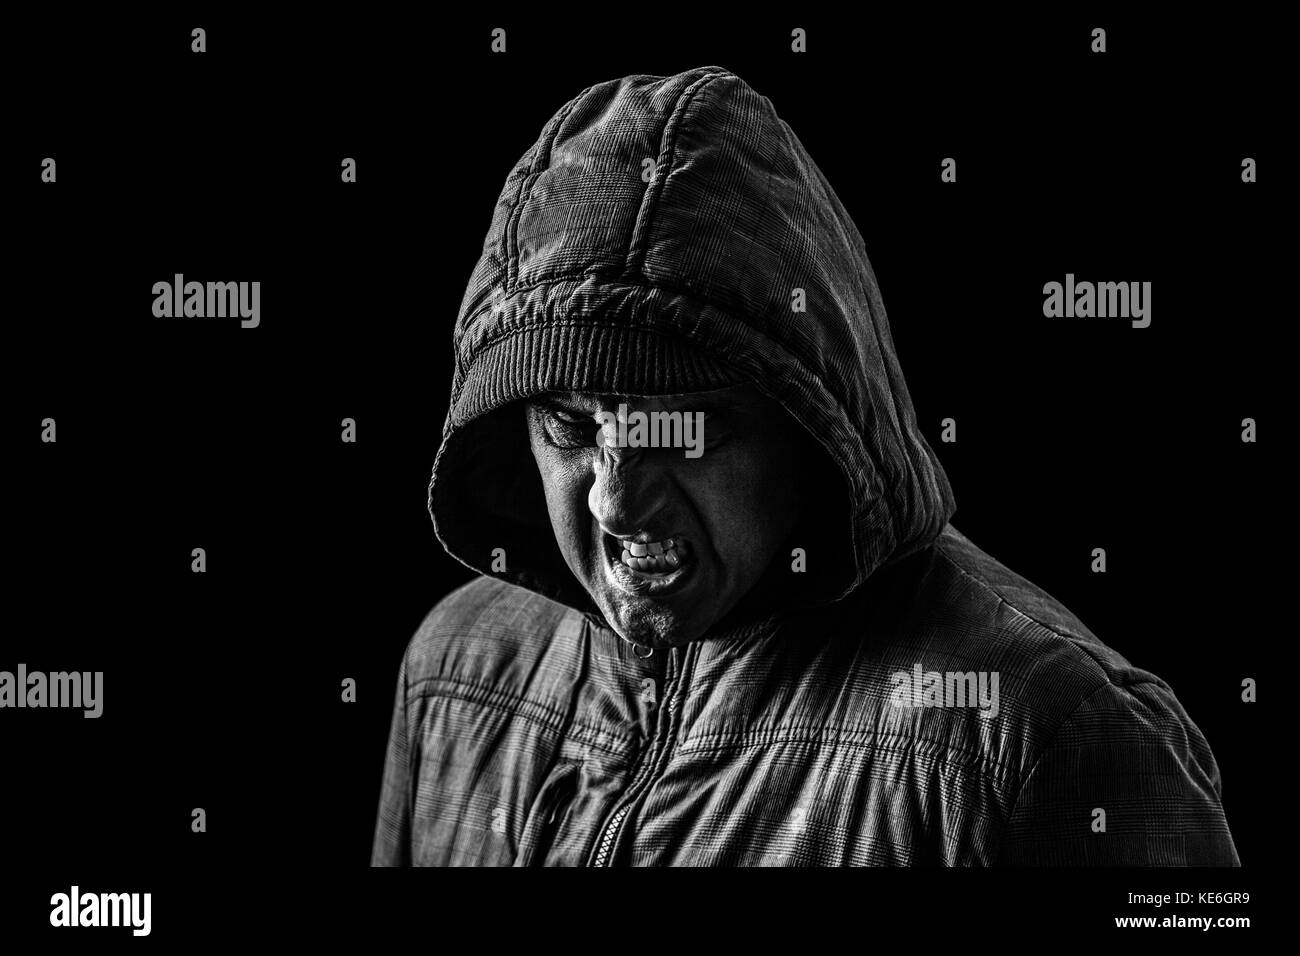 Very angry, aggressive, creepy man hiding the shadows, standing in the darkness.black background / creepy dangerous - Stock Image